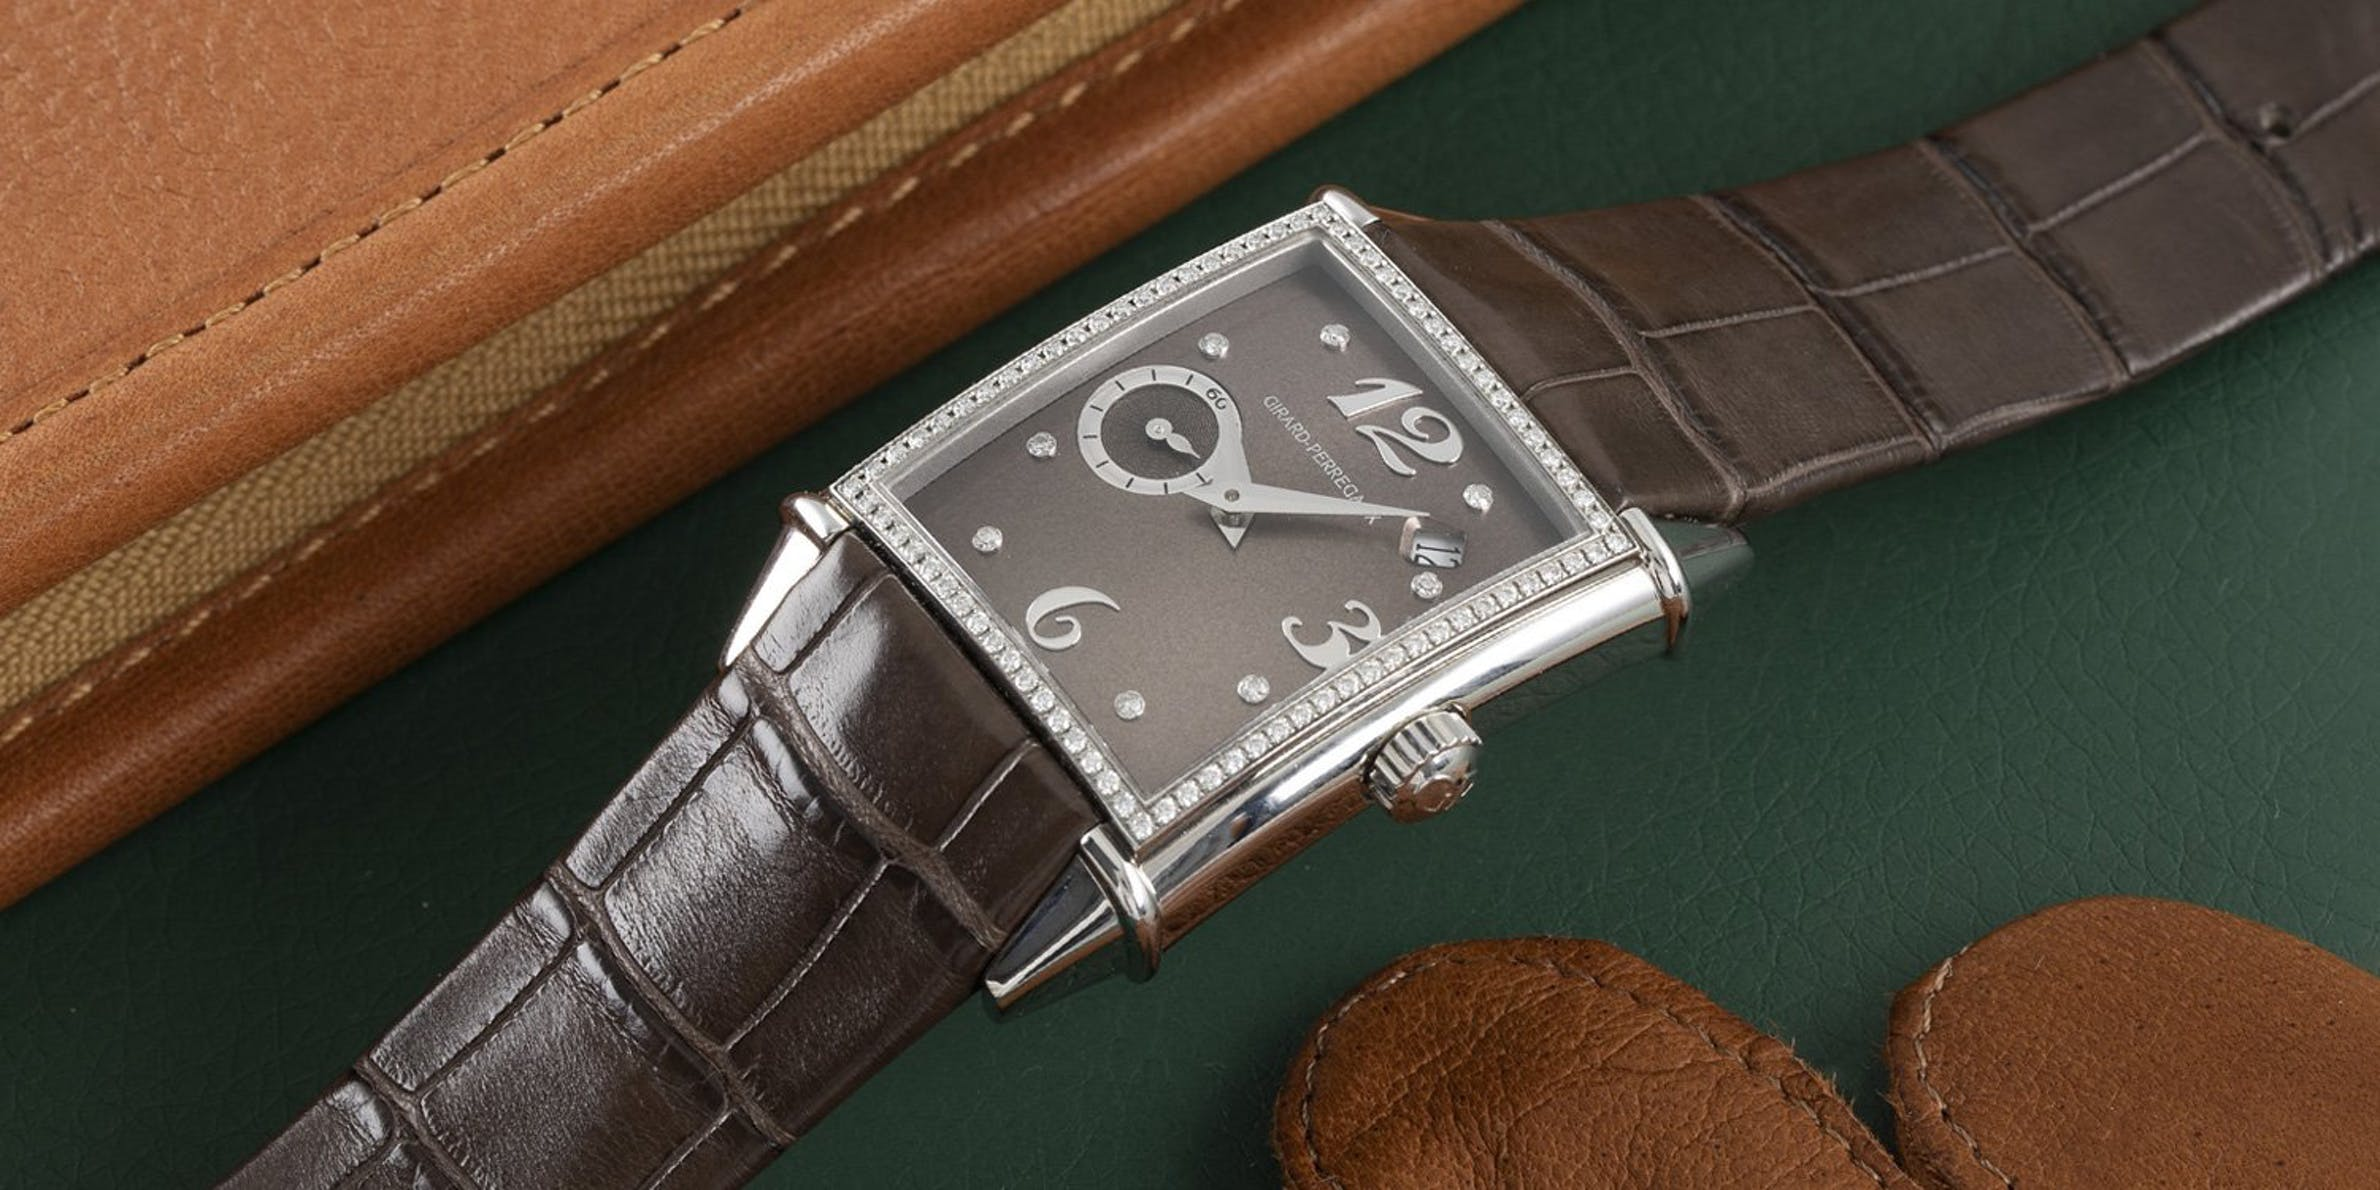 Classic vs. Vintage vs. Futuristic: What does your watch say about you?